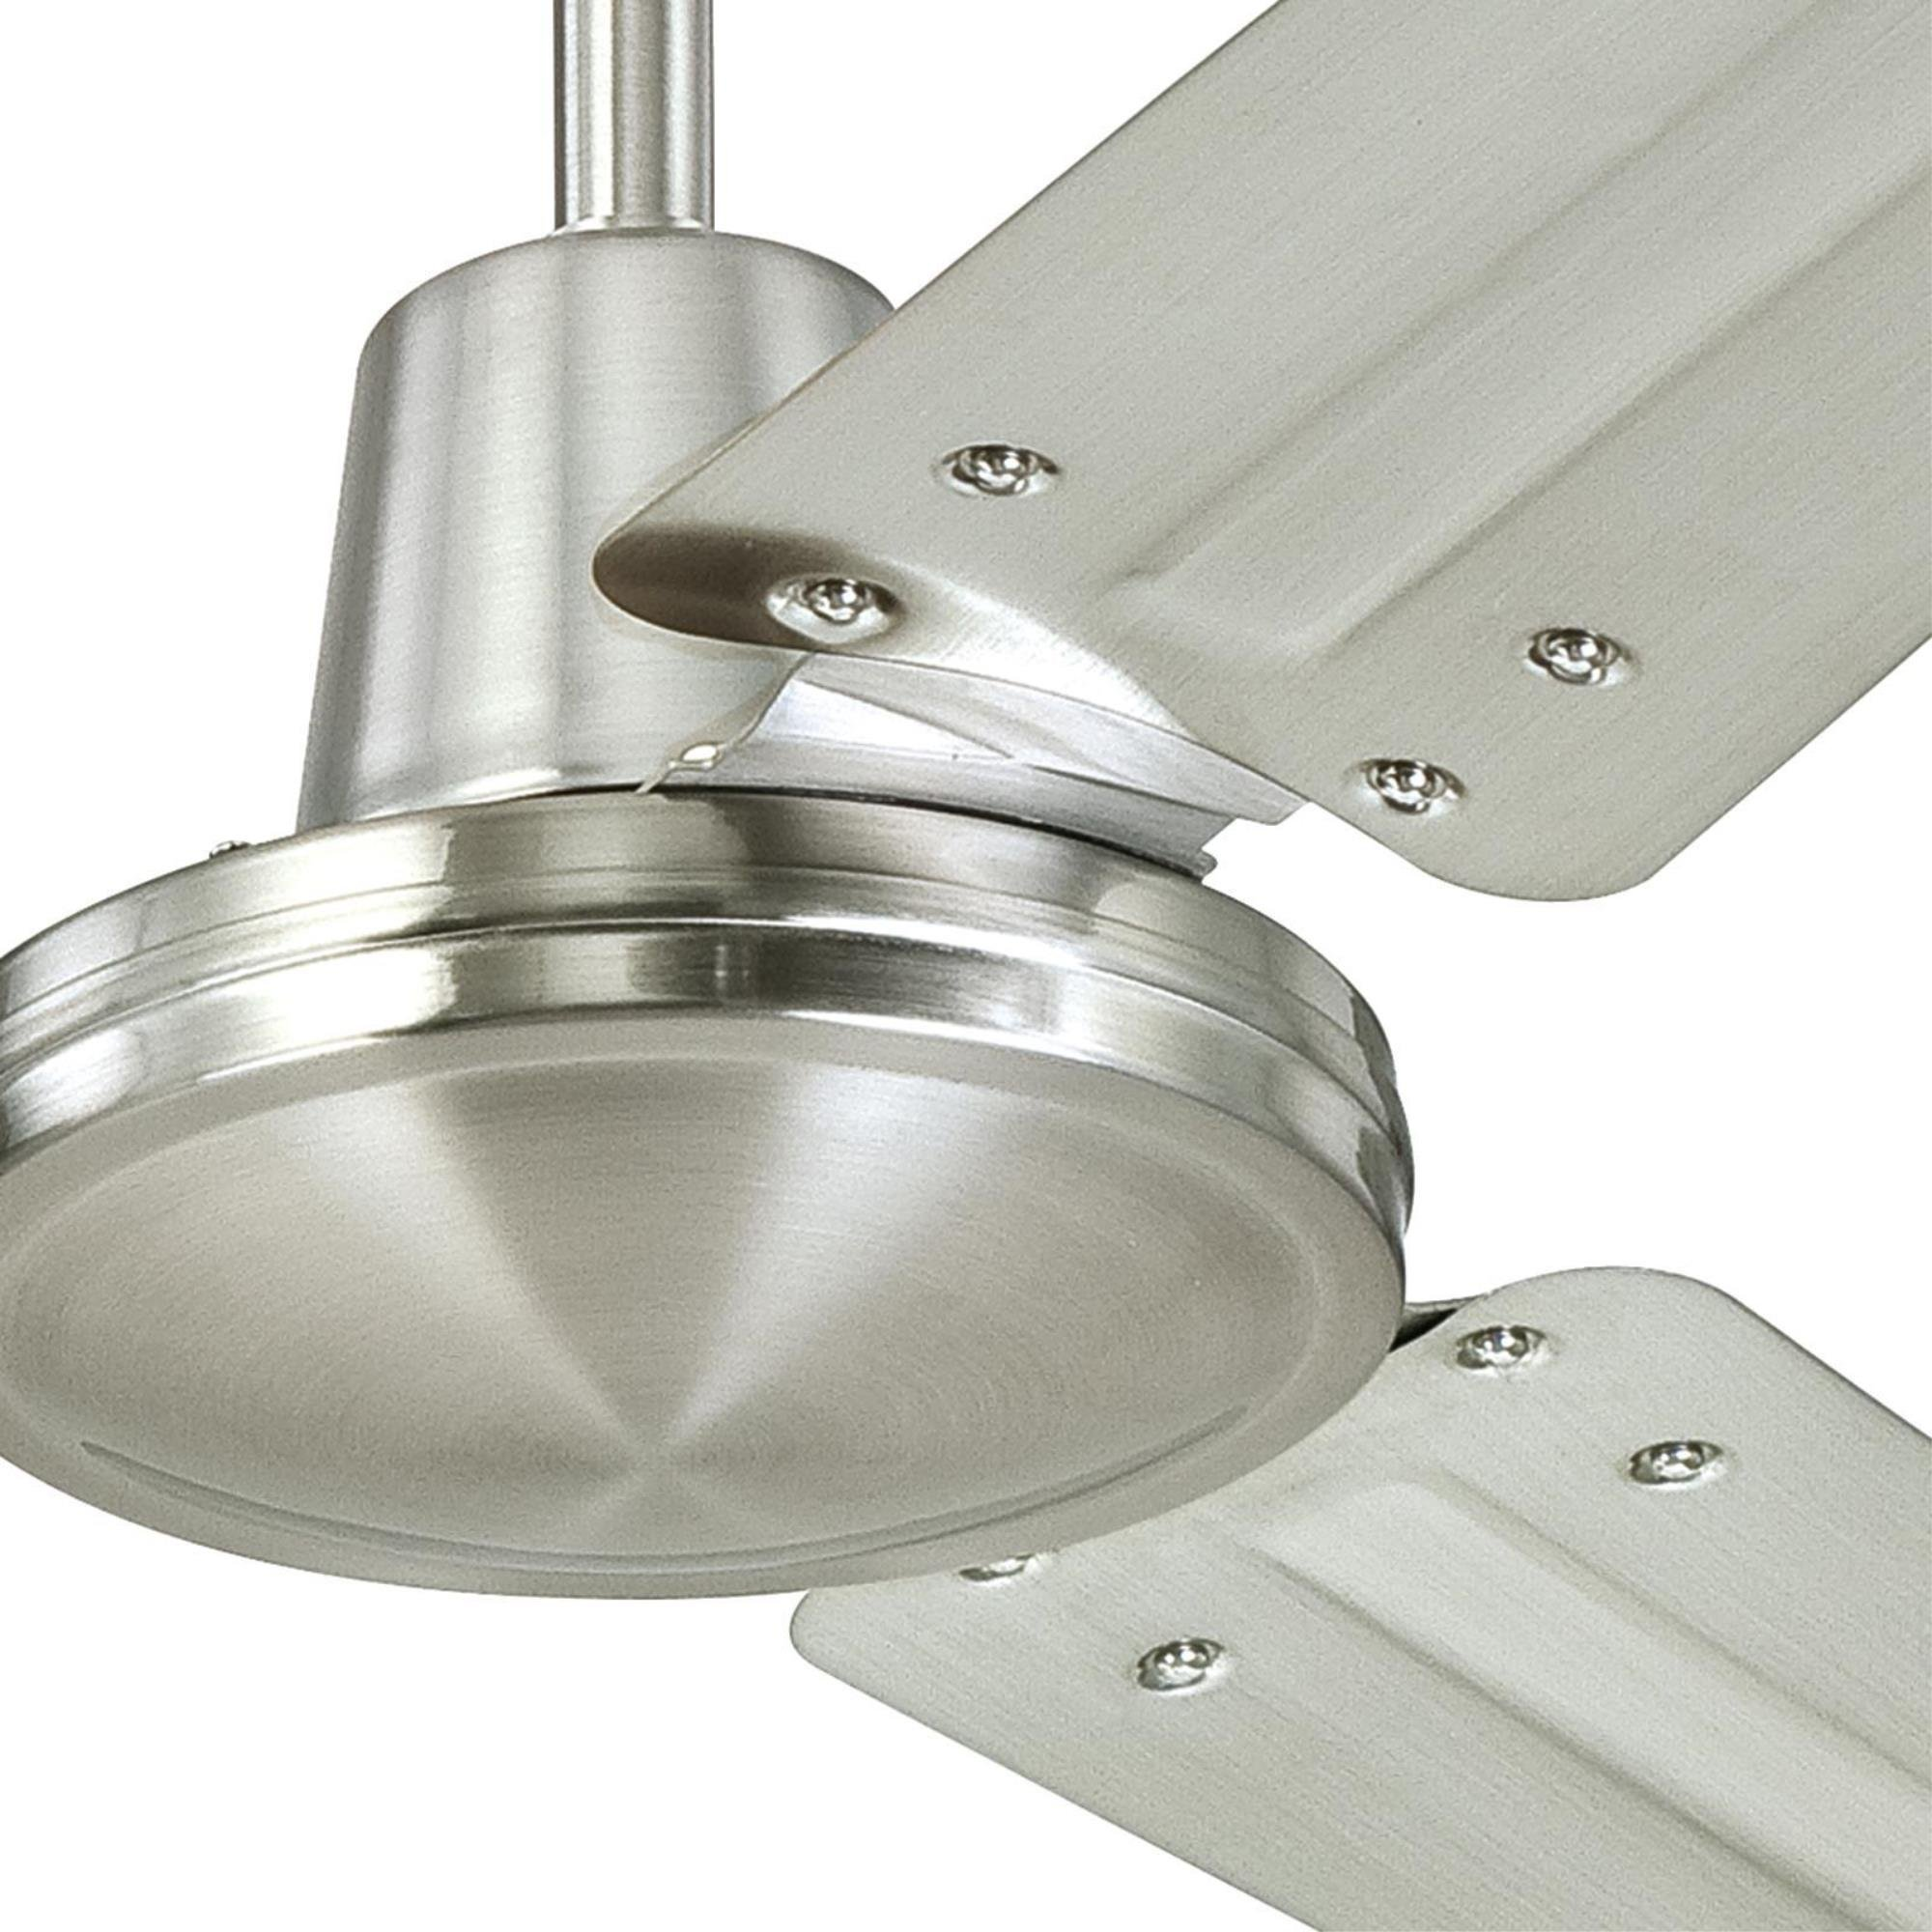 Westinghouse Lighting 7861400 Industrial 56-Inch Three-Blade Indoor Ceiling Fan, Brushed Nickel with Brushed Nickel Steel Blades by Westinghouse Lighting (Image #4)